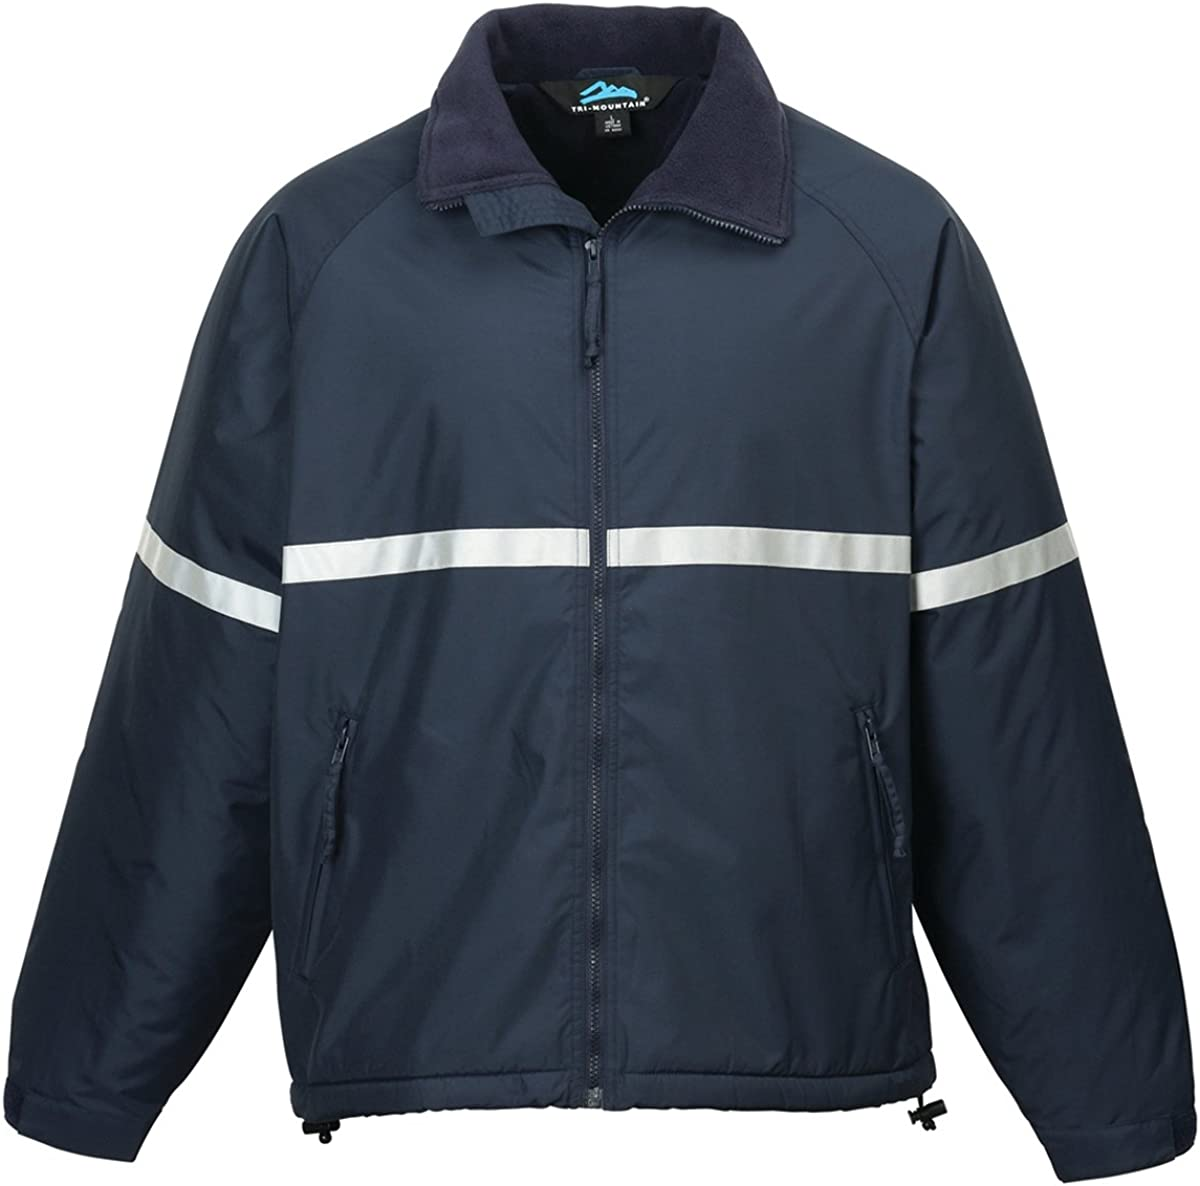 Tri-mountain Men windproof/water resistant heavyweight safety jacket. 8835 - NAVY_XL